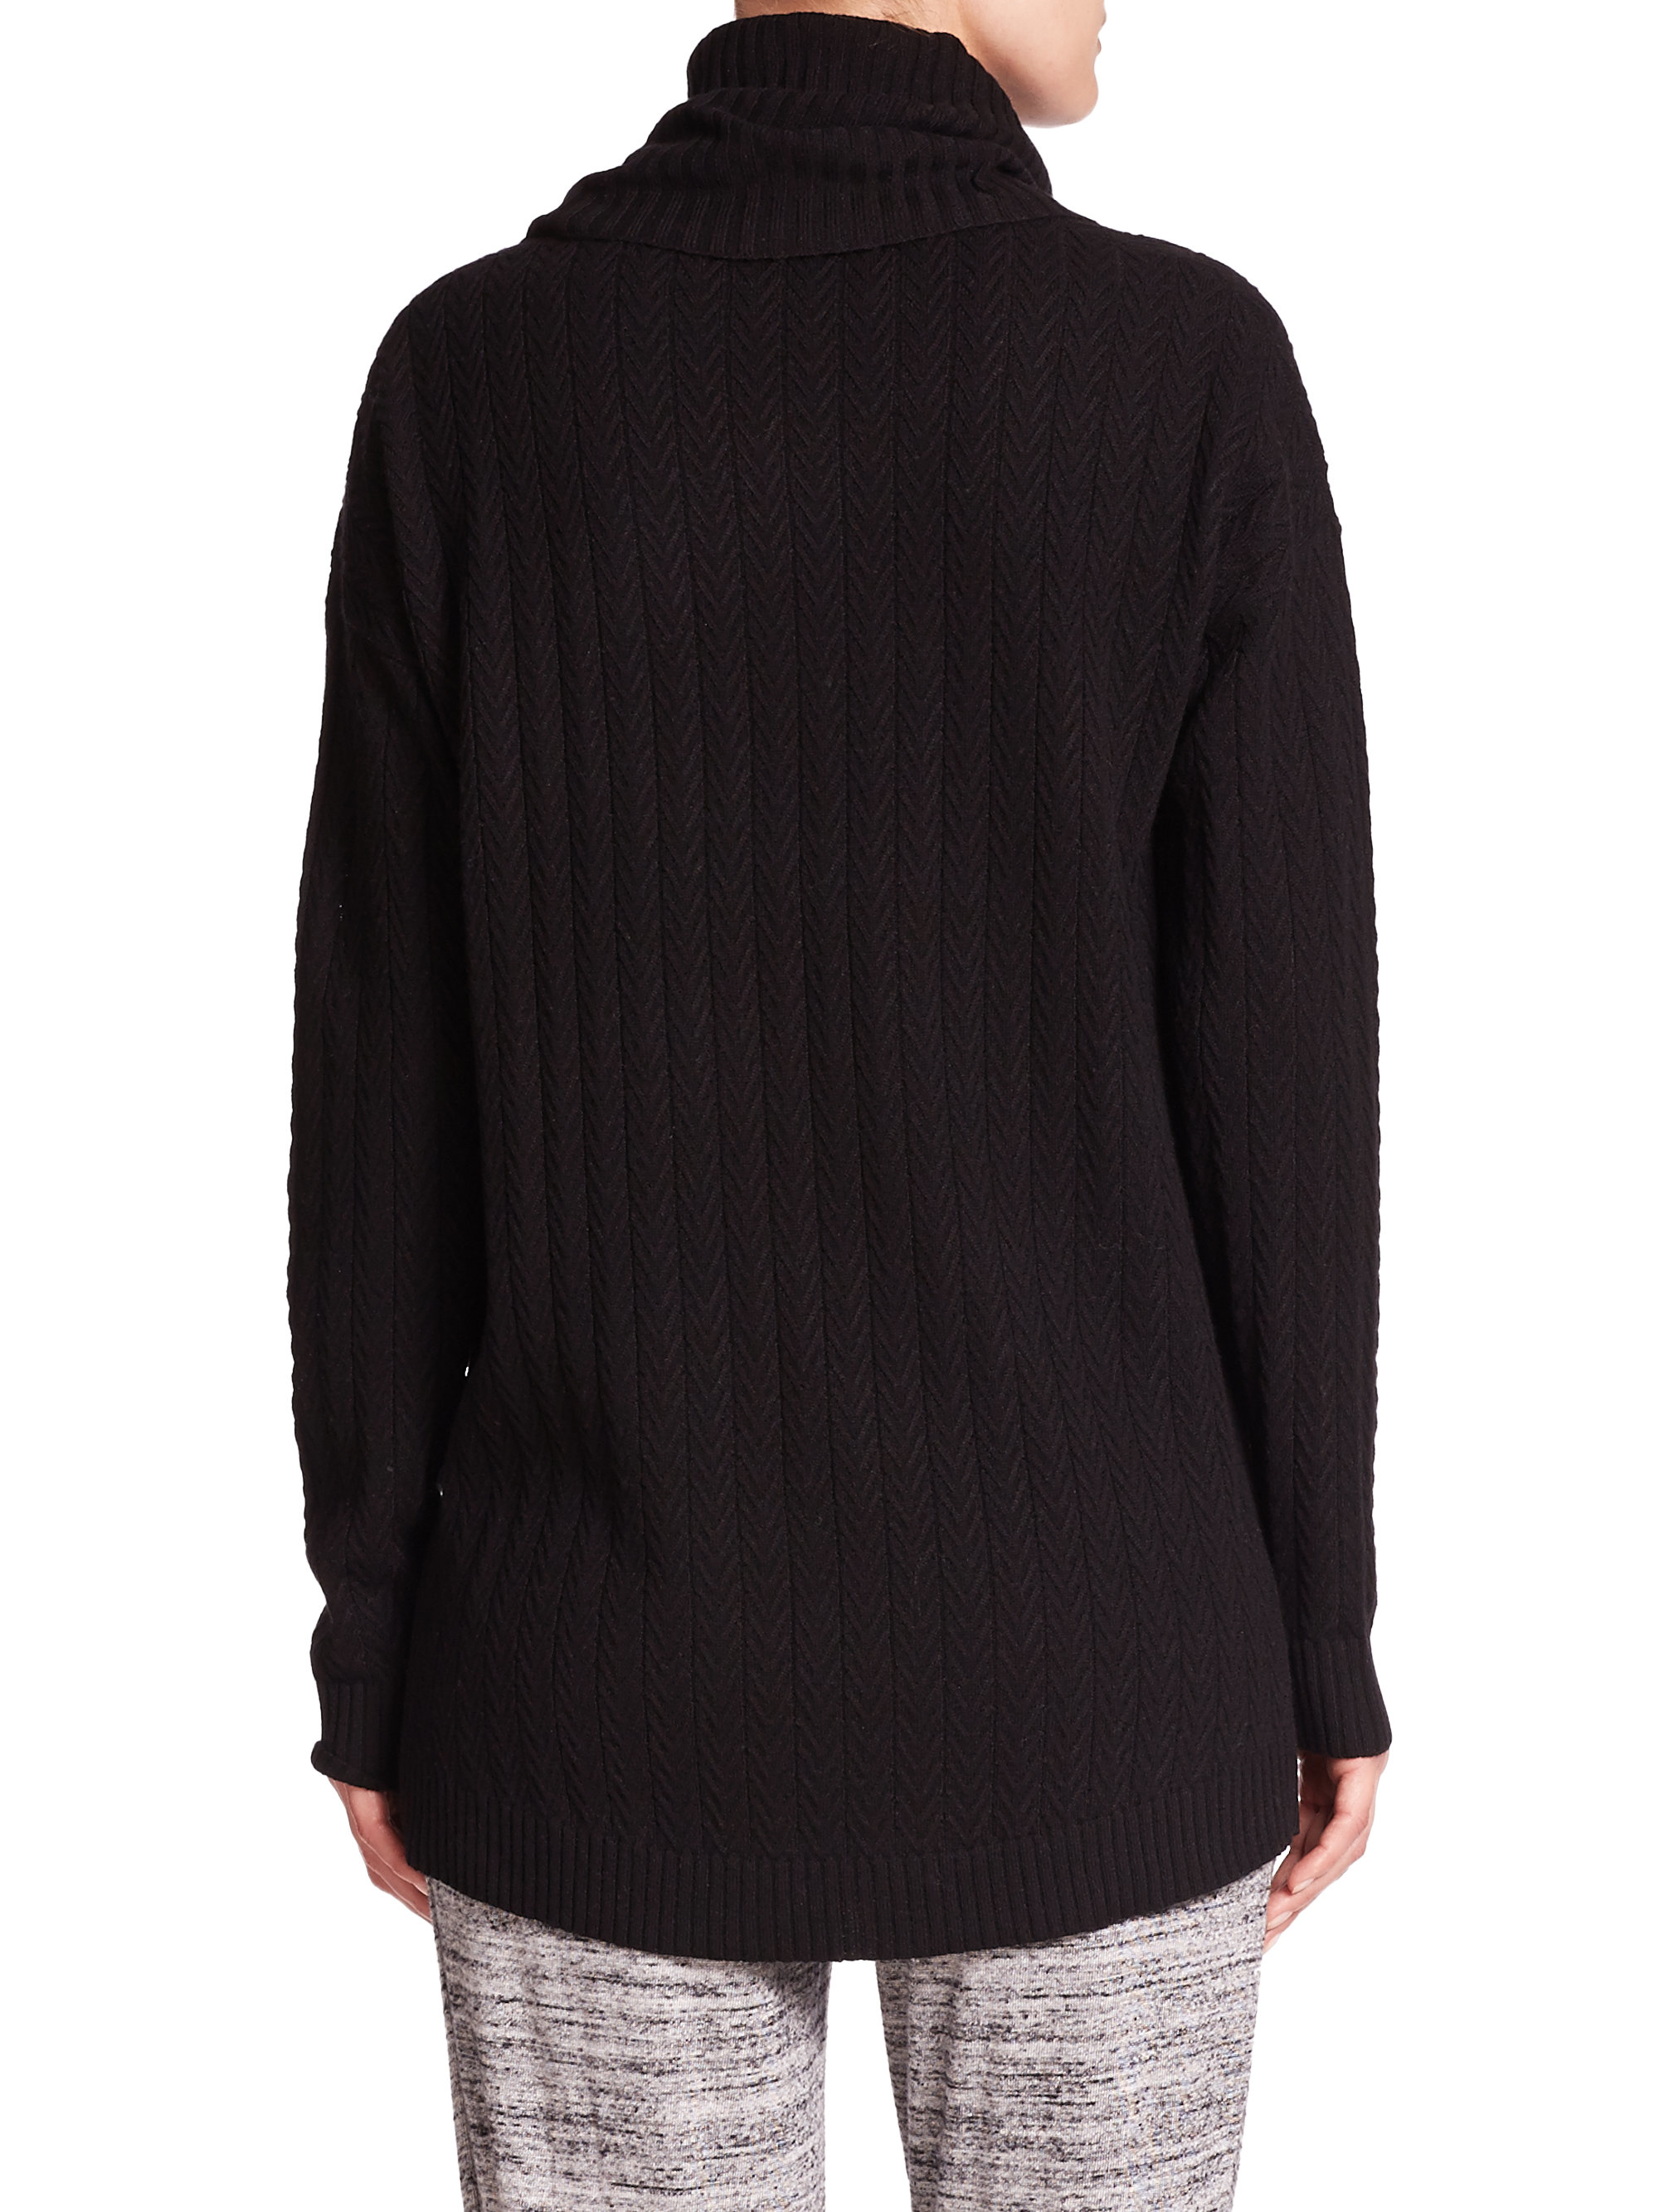 Find black silk turtleneck sweaters at ShopStyle. Shop the latest collection of black silk turtleneck sweaters from the most popular stores - all in.